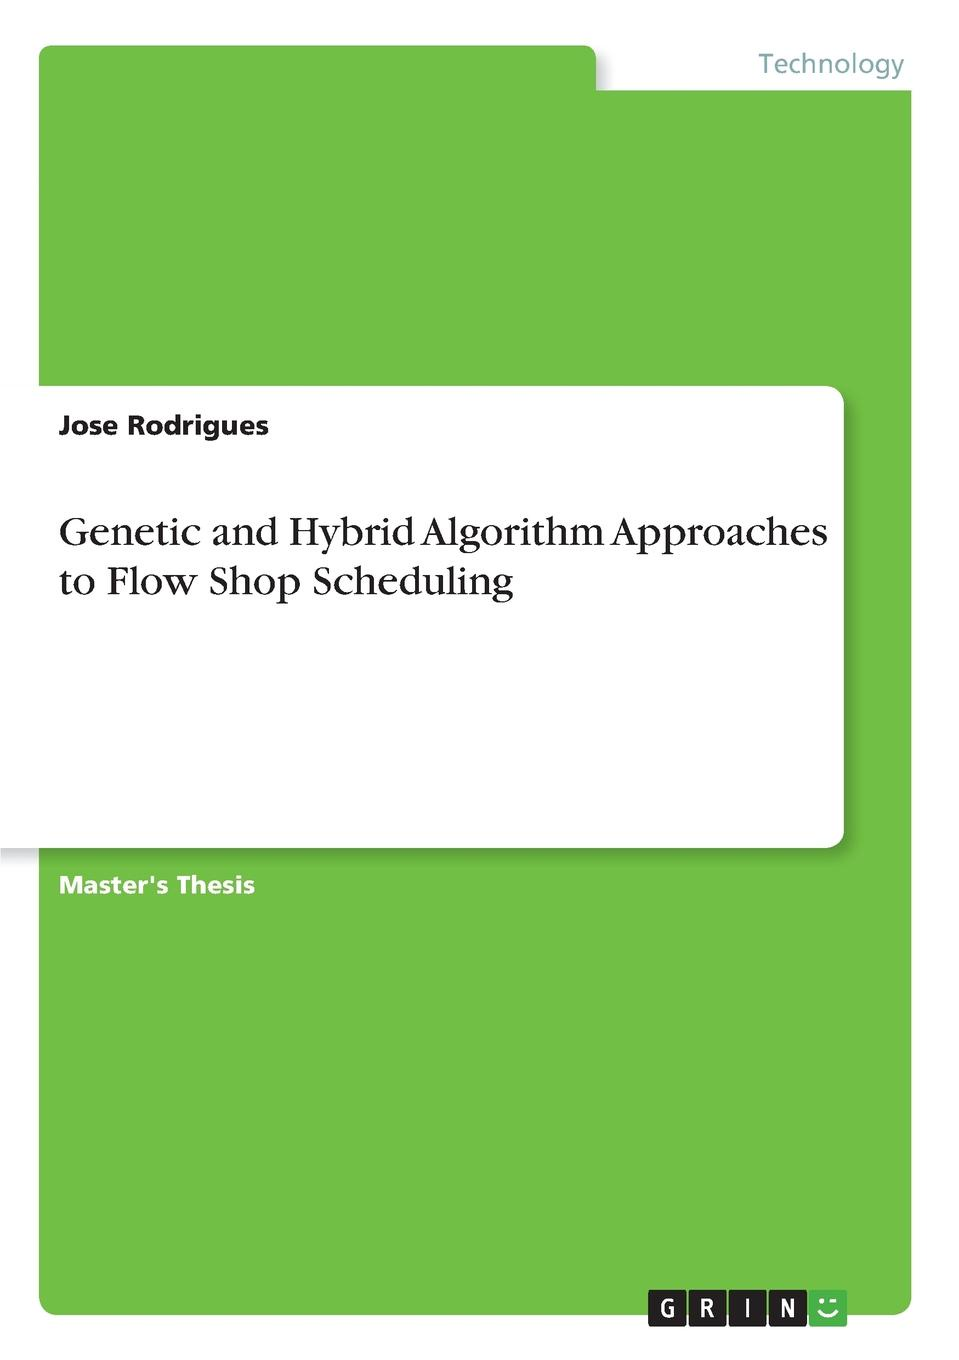 купить Jose Rodrigues Genetic and Hybrid Algorithm Approaches to Flow Shop Scheduling по цене 6102 рублей